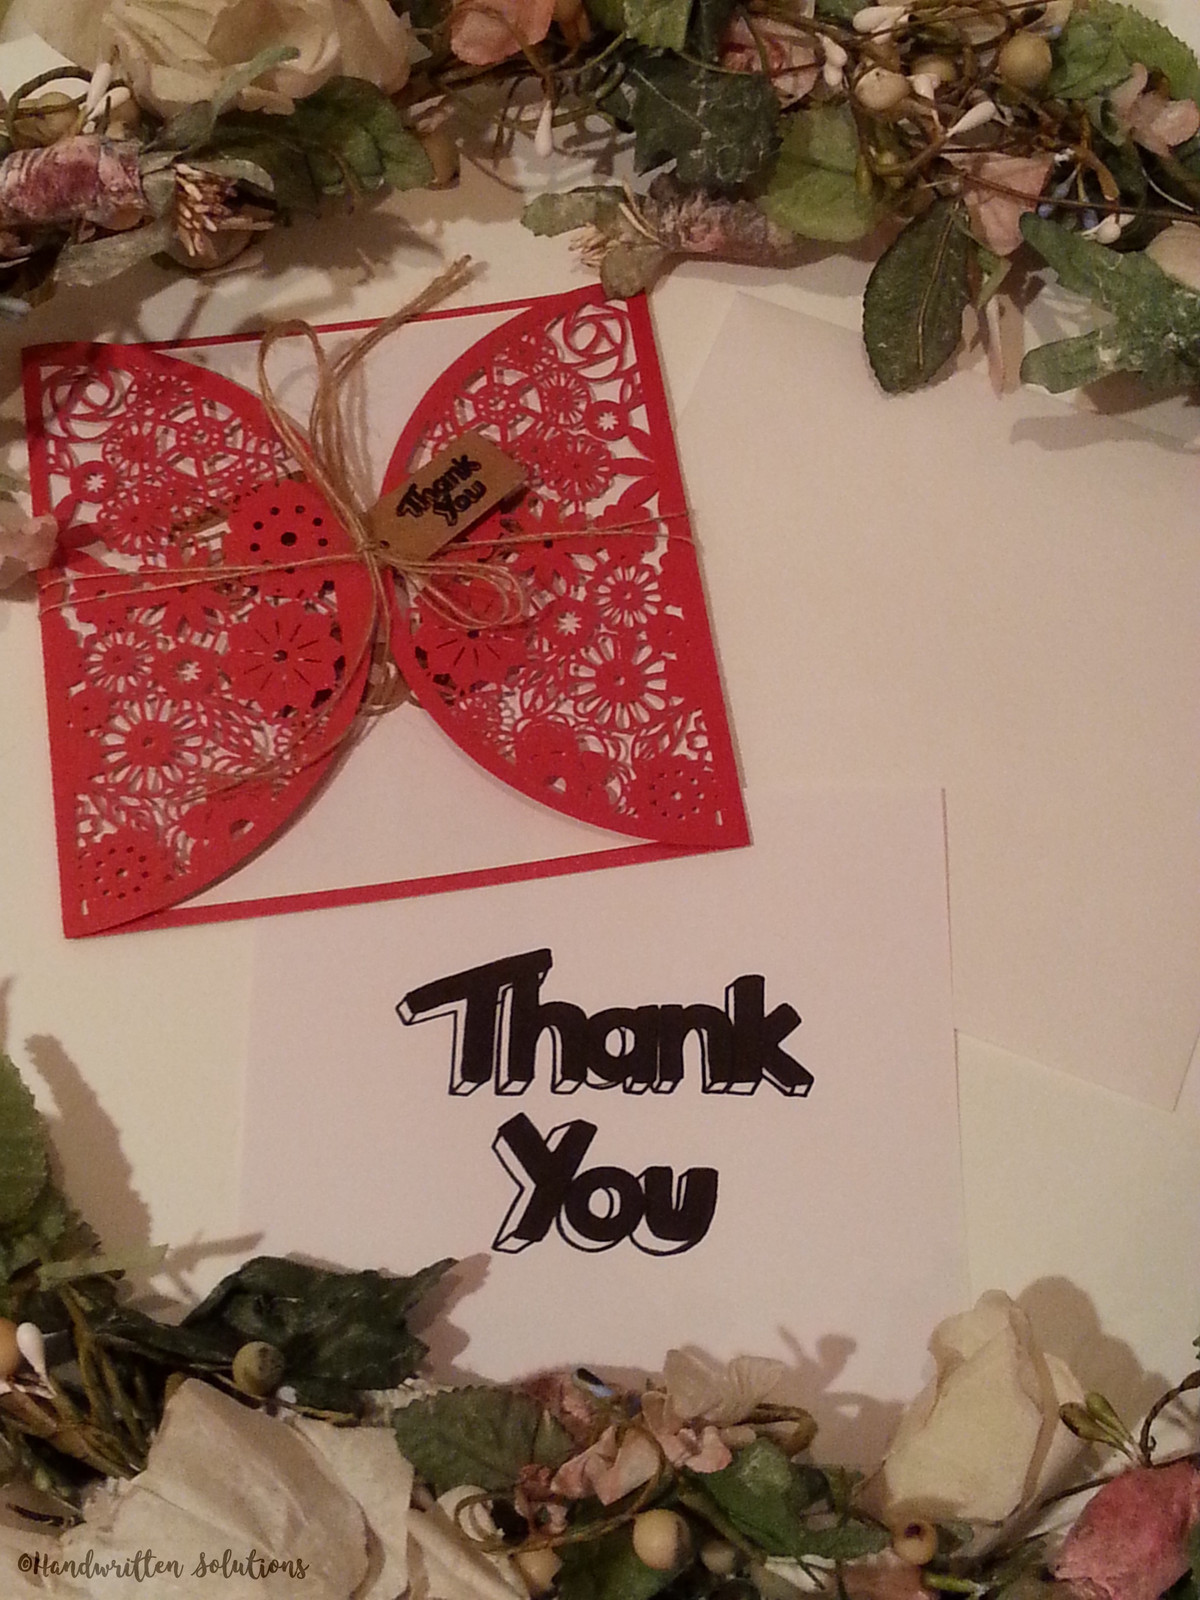 Handwritten Thank You Cards Handwritten Solutions Australia